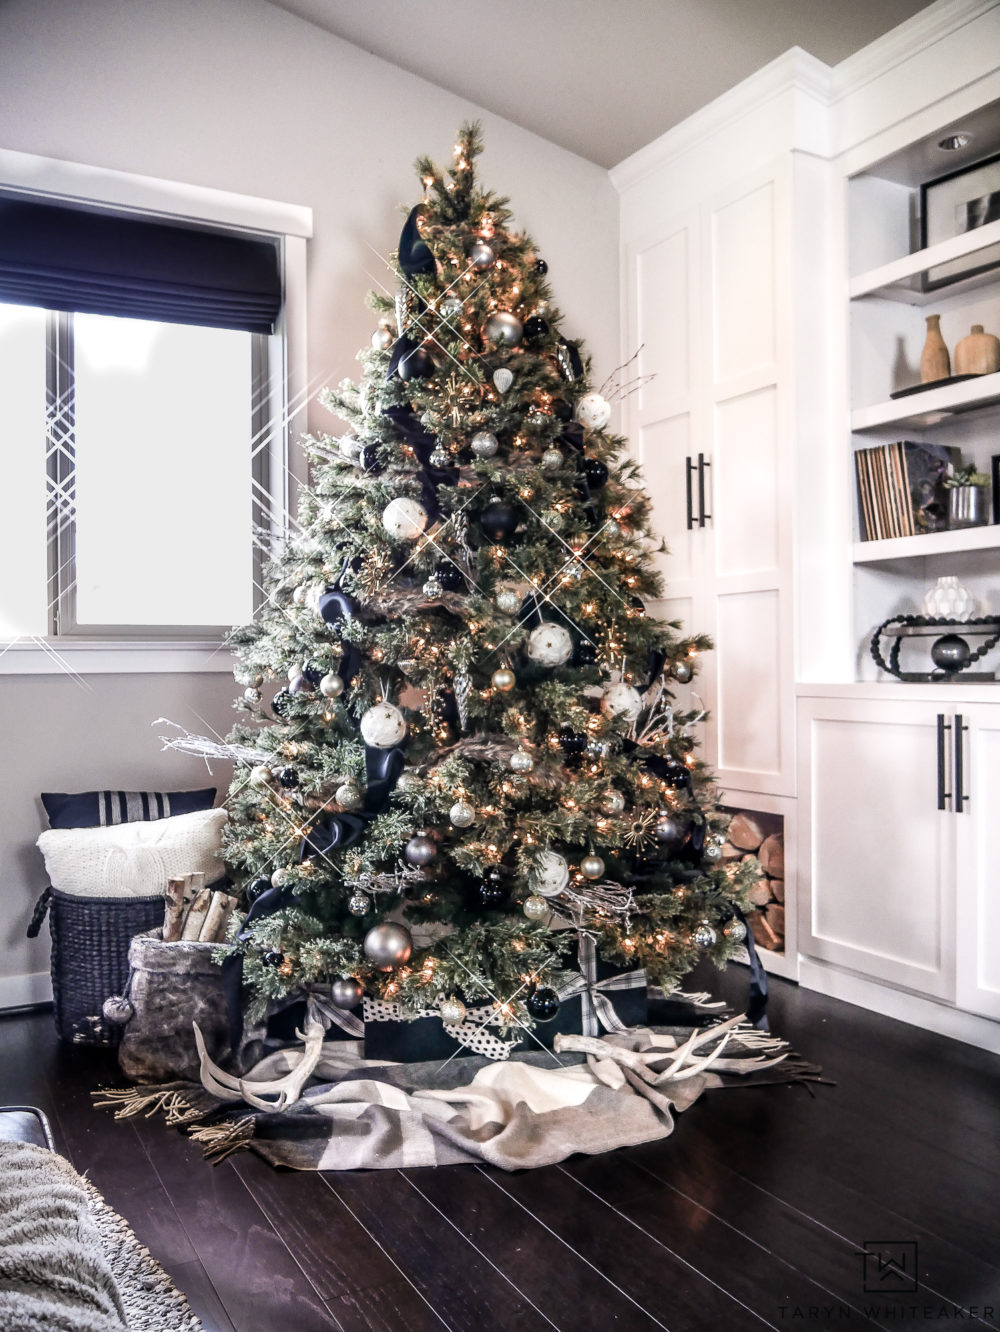 How To Decorate A Christmas Tree With Ribbon.How To Put Ribbon On A Christmas Tree 20 Decorating Ideas